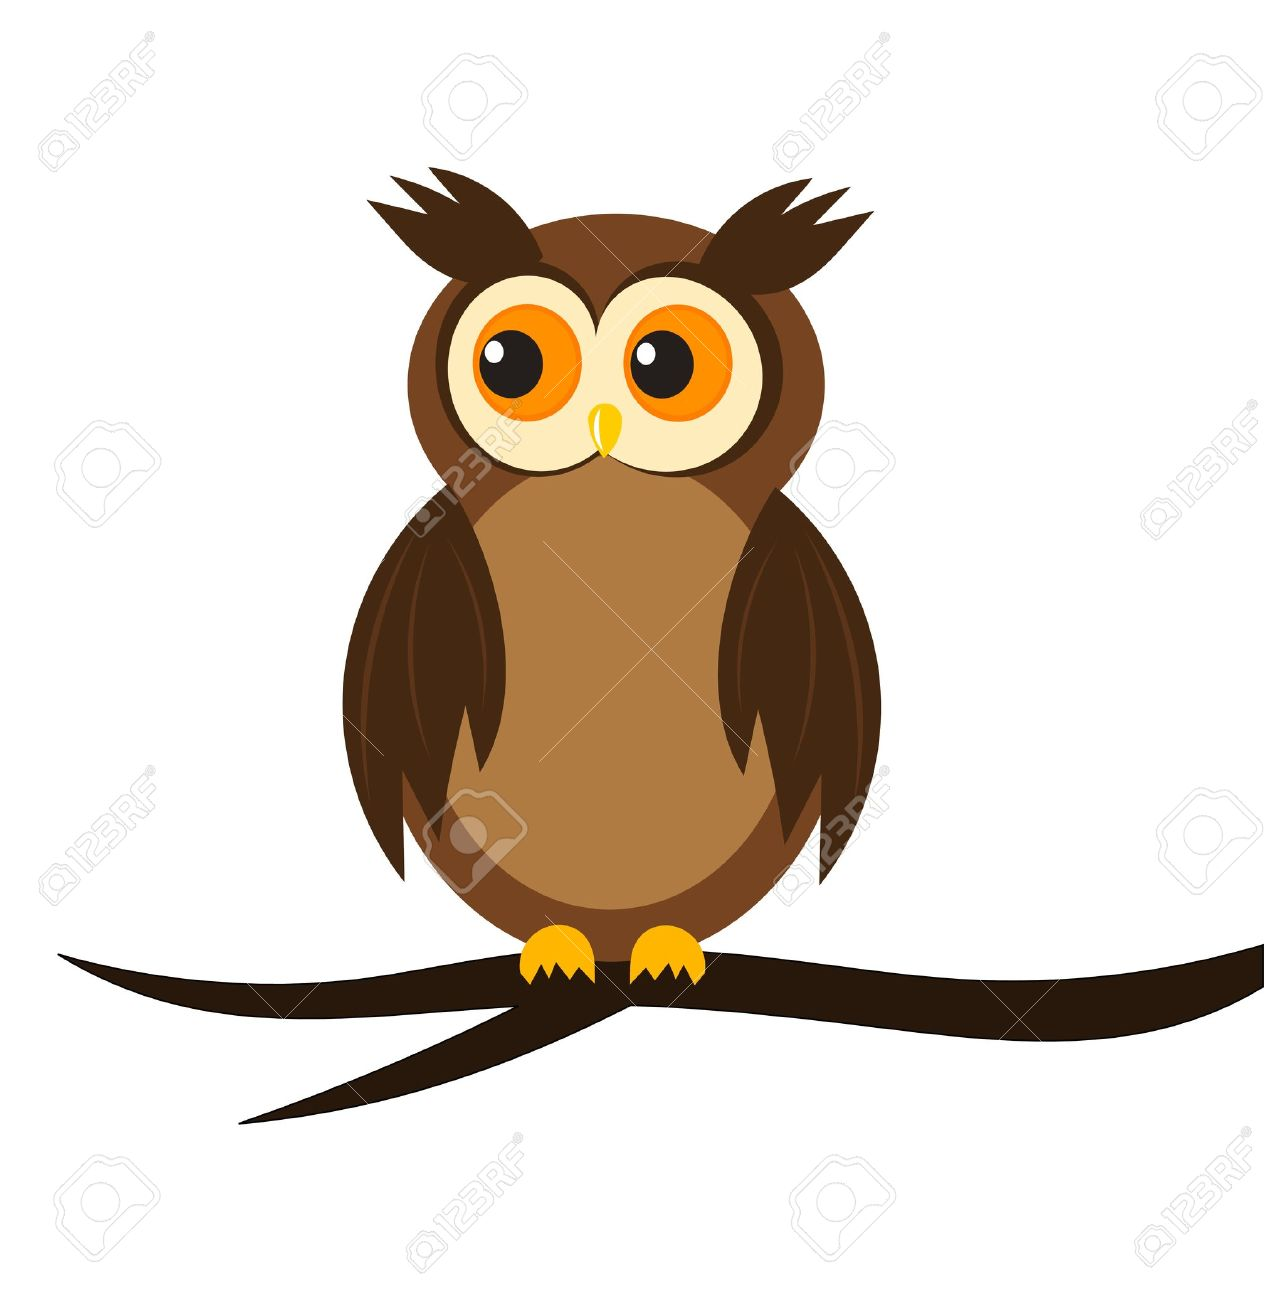 Cartoon Owl Sitting On Tree Branch Royalty Free Cliparts Vectors And Stock Illustration Image 15809705 Download this vector owl, owl clipart, cute owl, cartoon owl png clipart image with transparent background or psd file for free. cartoon owl sitting on tree branch